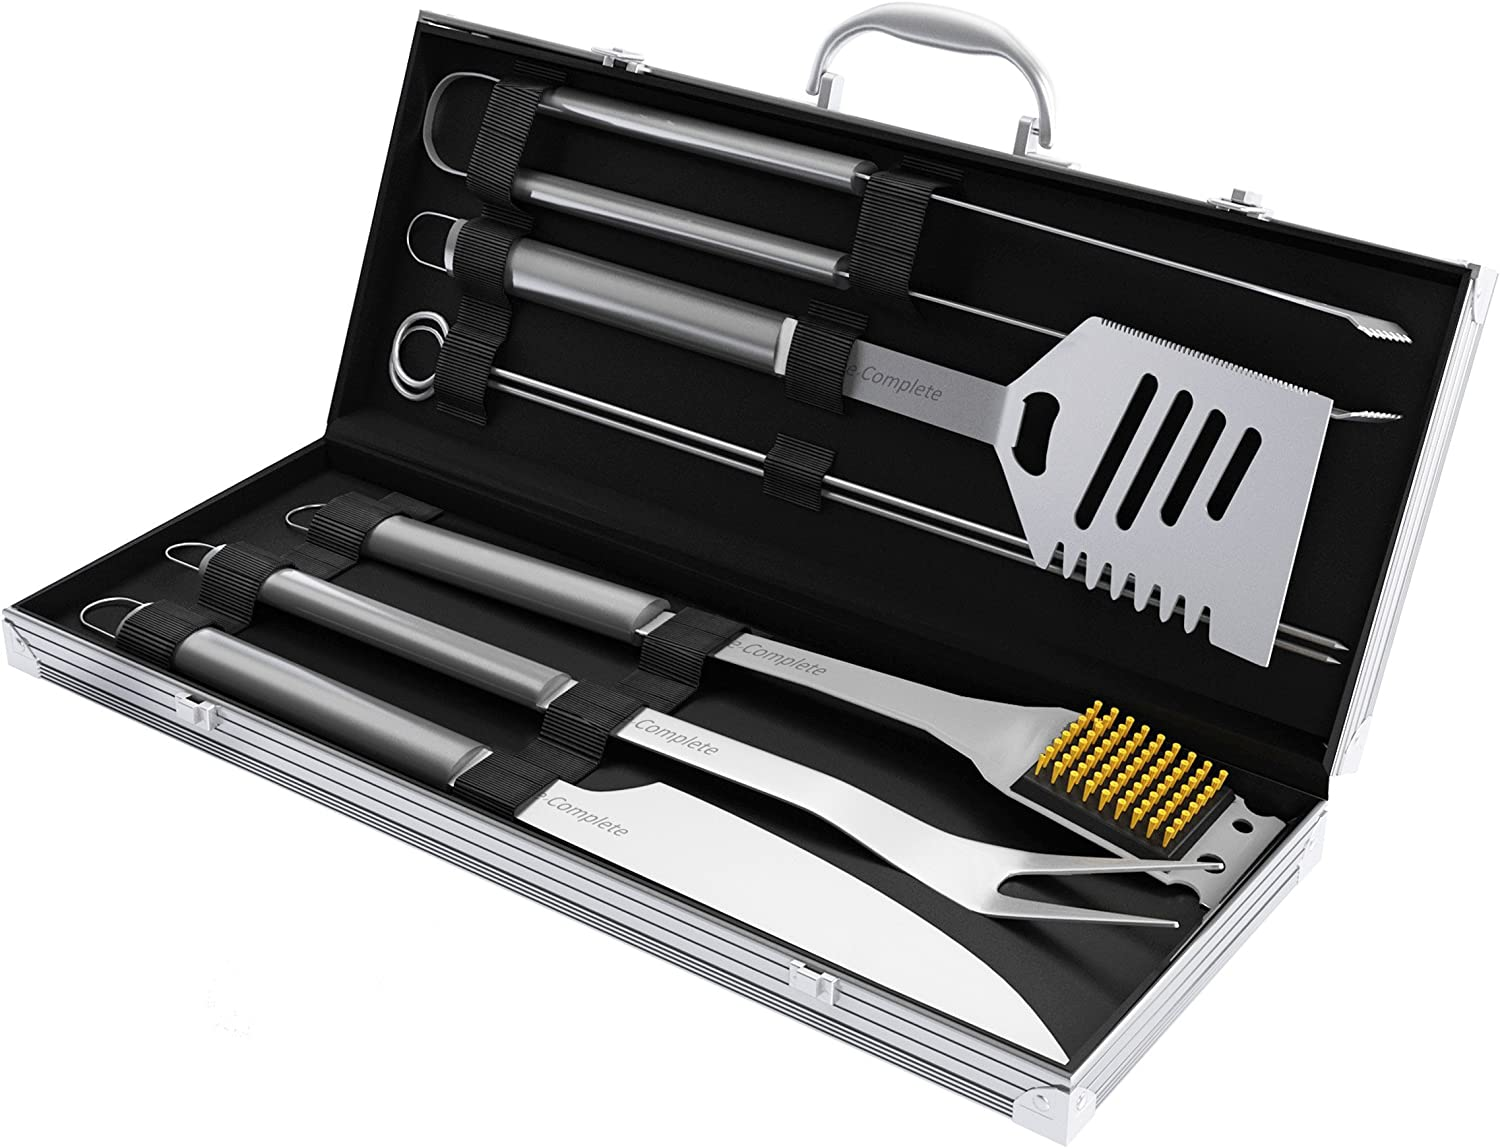 Home-Complete BBQ Grill Tool Set- Stainless Steel Barbecue Grilling Accessories Aluminum Storage Case, Includes Spatula, Tongs, Basting Brush